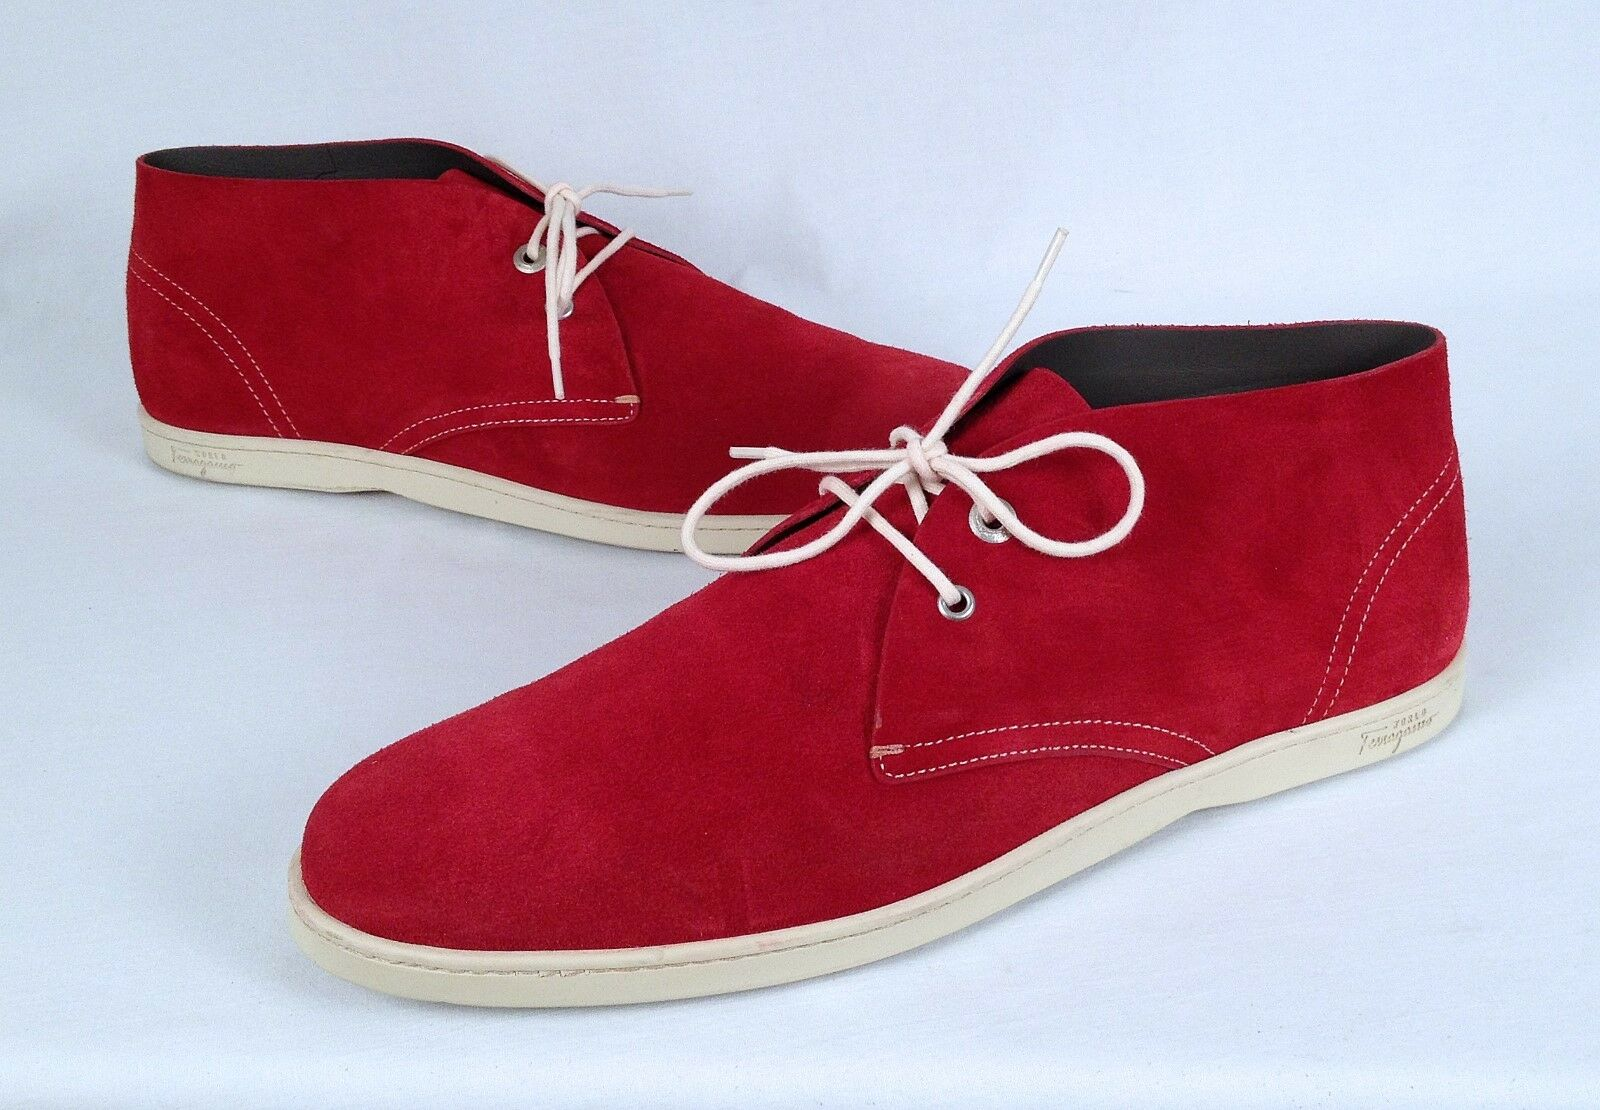 Salvatore Ferragamo Nautical Chukka Boot- Red Suede- Size 12 D  $650  (H6)